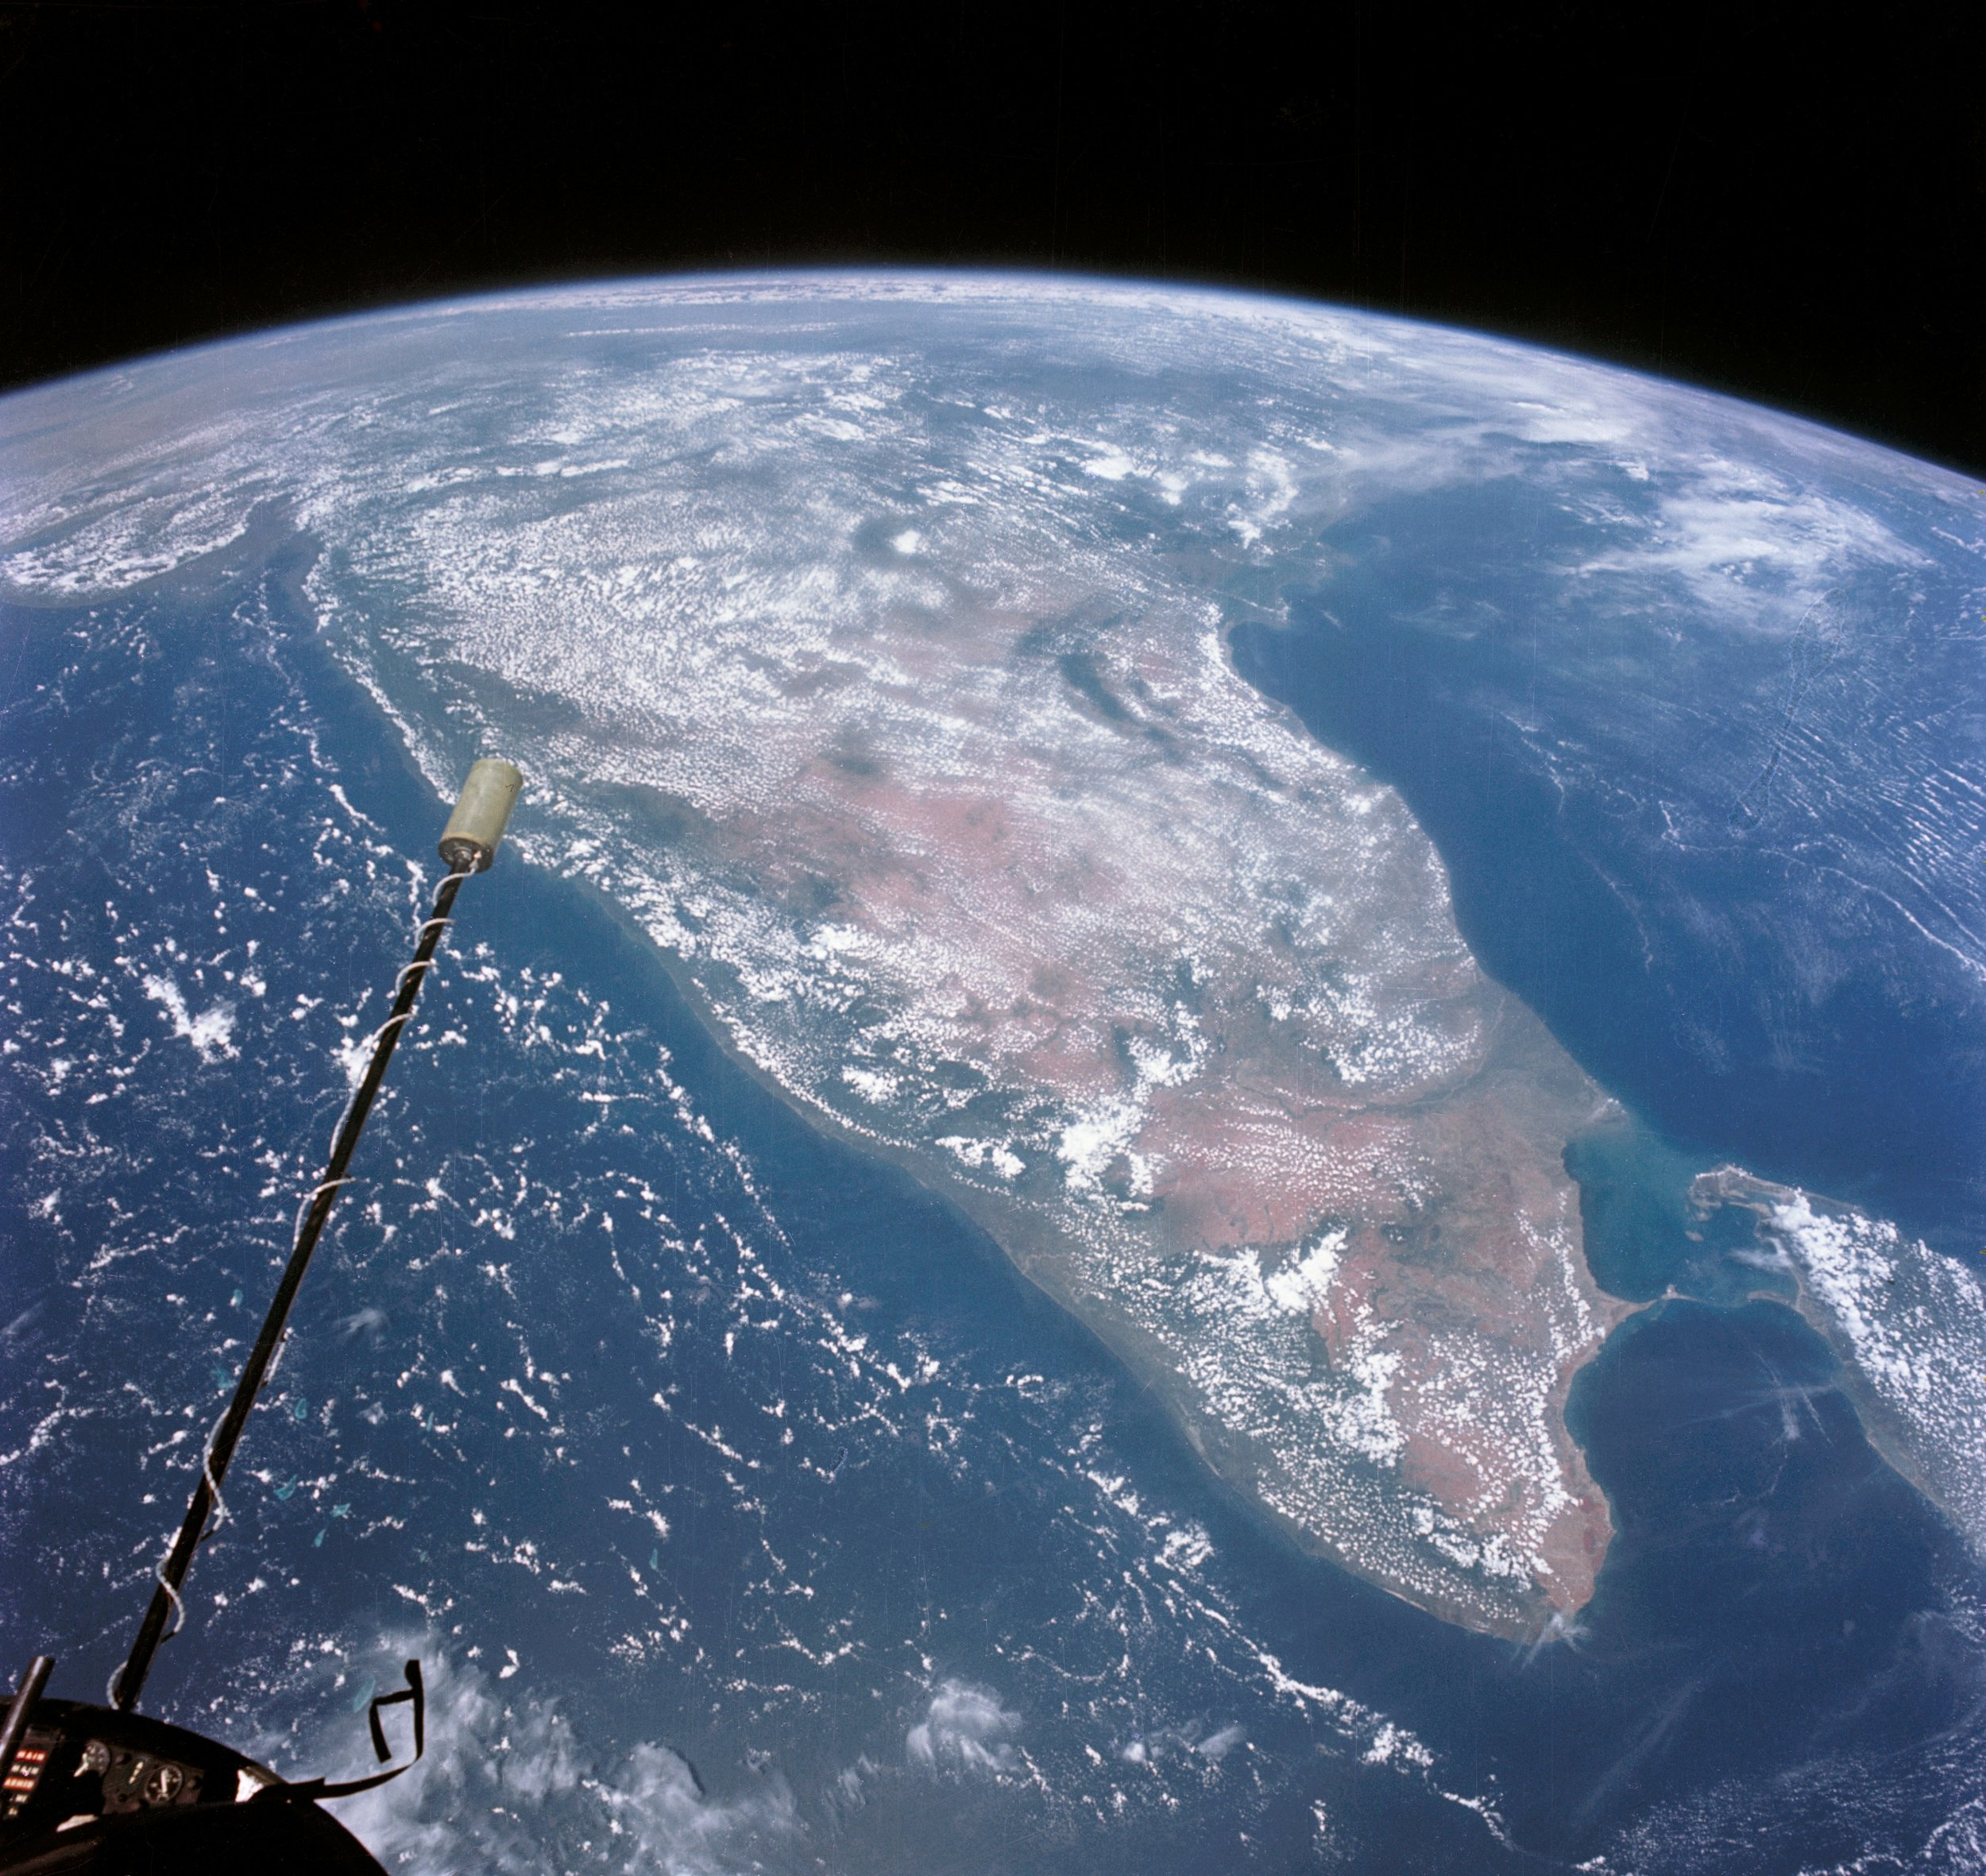 Photograph of India-Ceylon looking north; Arabian Sea and Bay of Bengal; Altitude 400; taken during the Gemini XI mission 1966